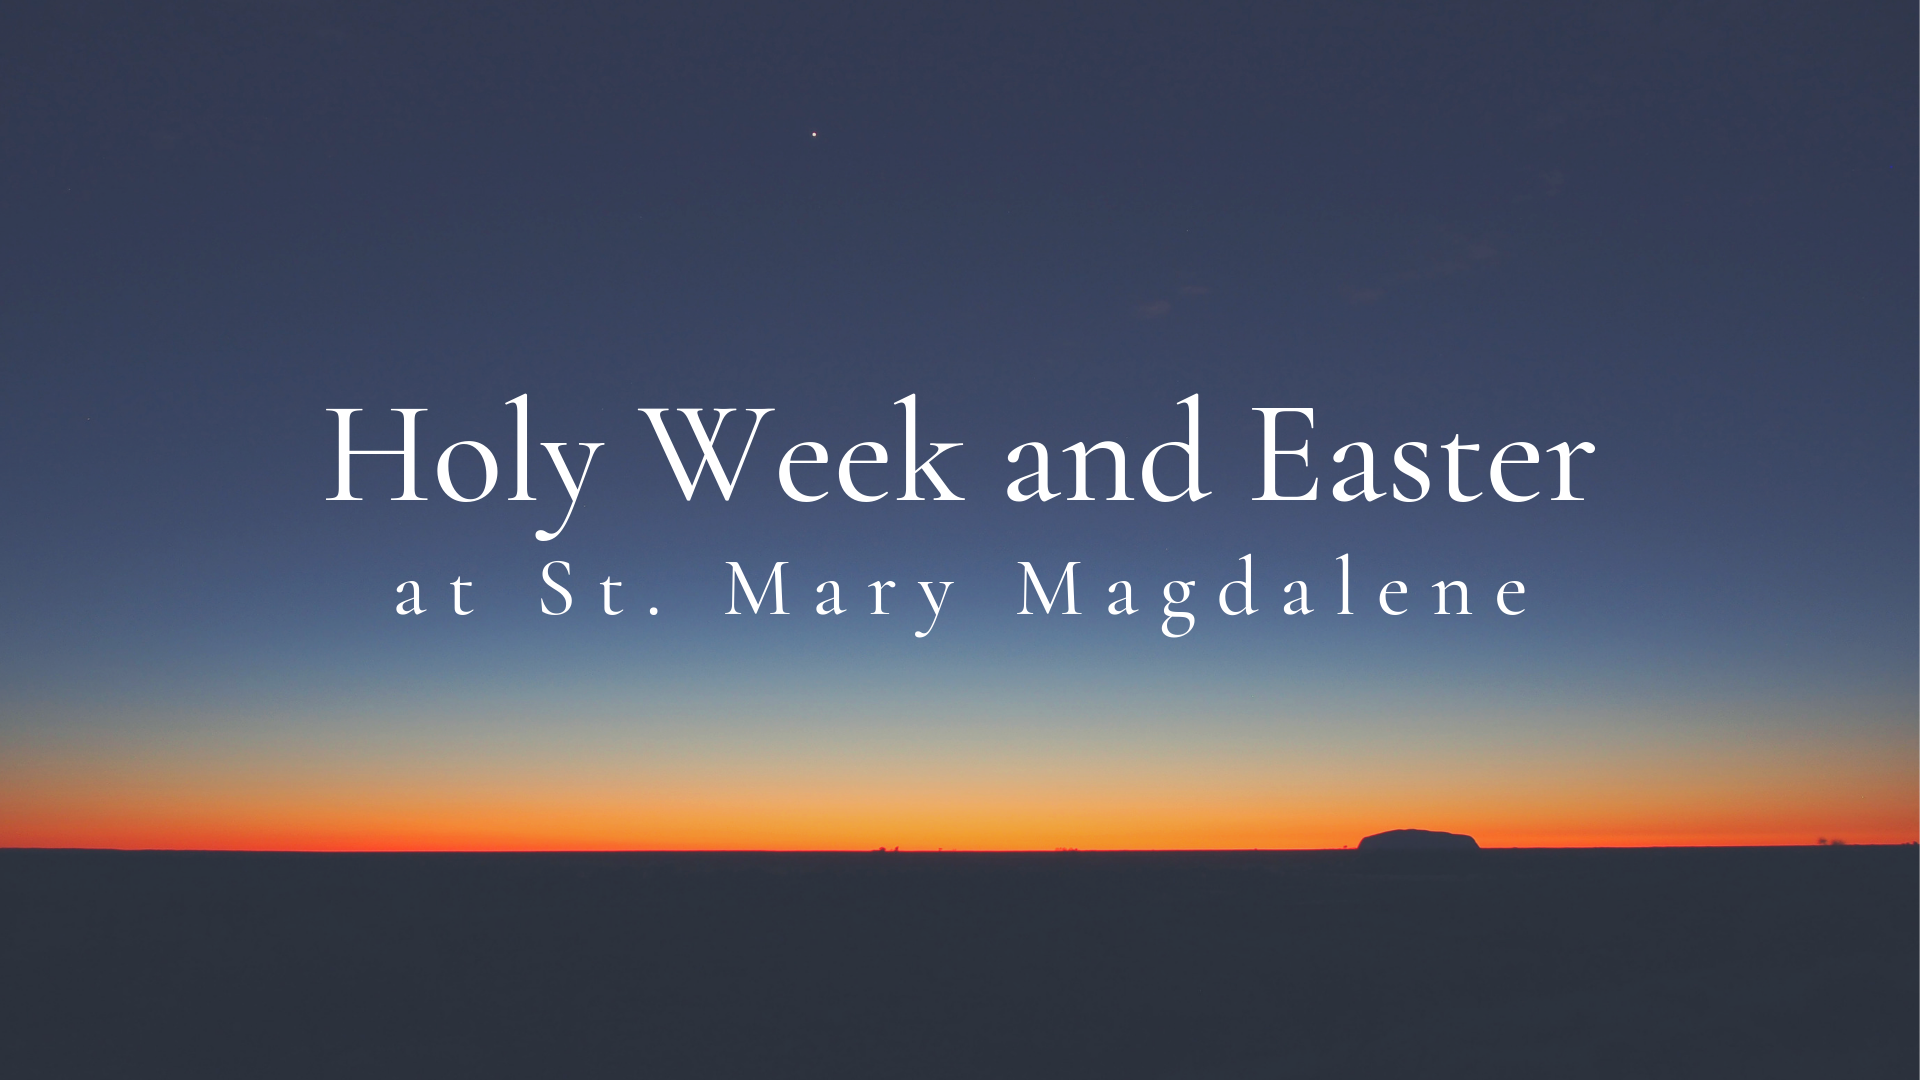 Copy of Holy Week and Easter.png